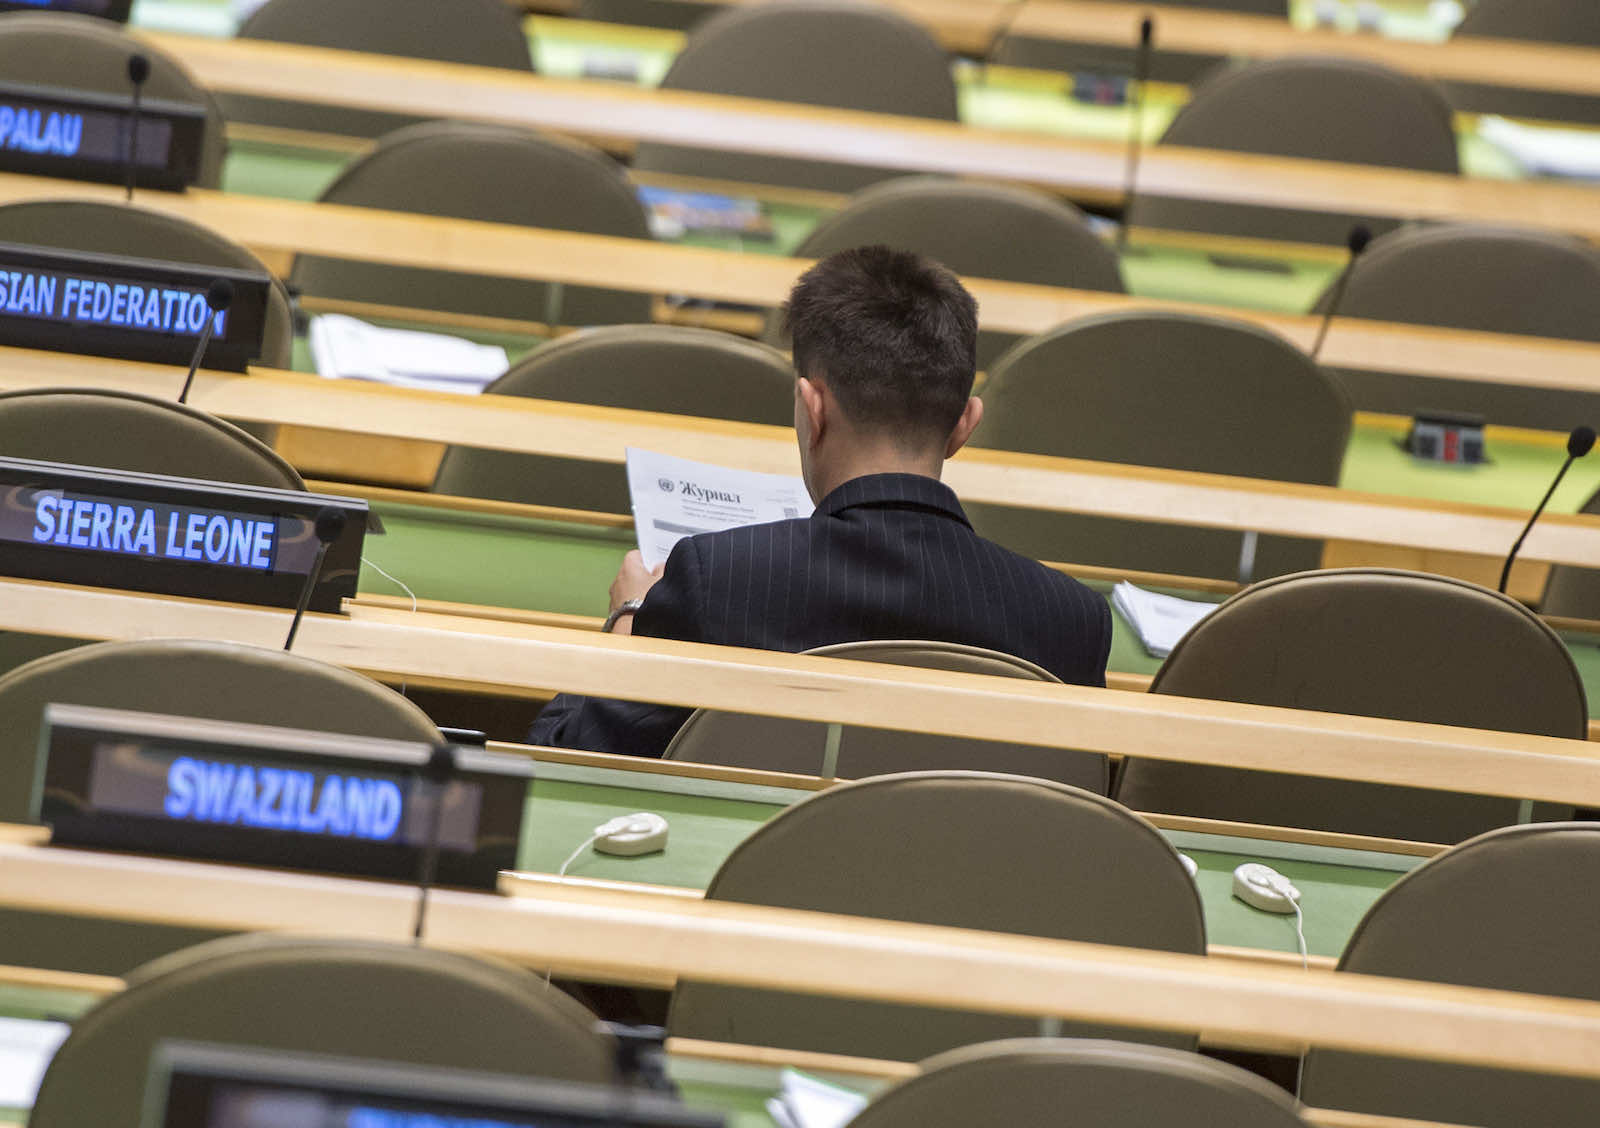 The General Assembly Hall in the United Nations headquarters, New York (Cia Pak/UN Photo)